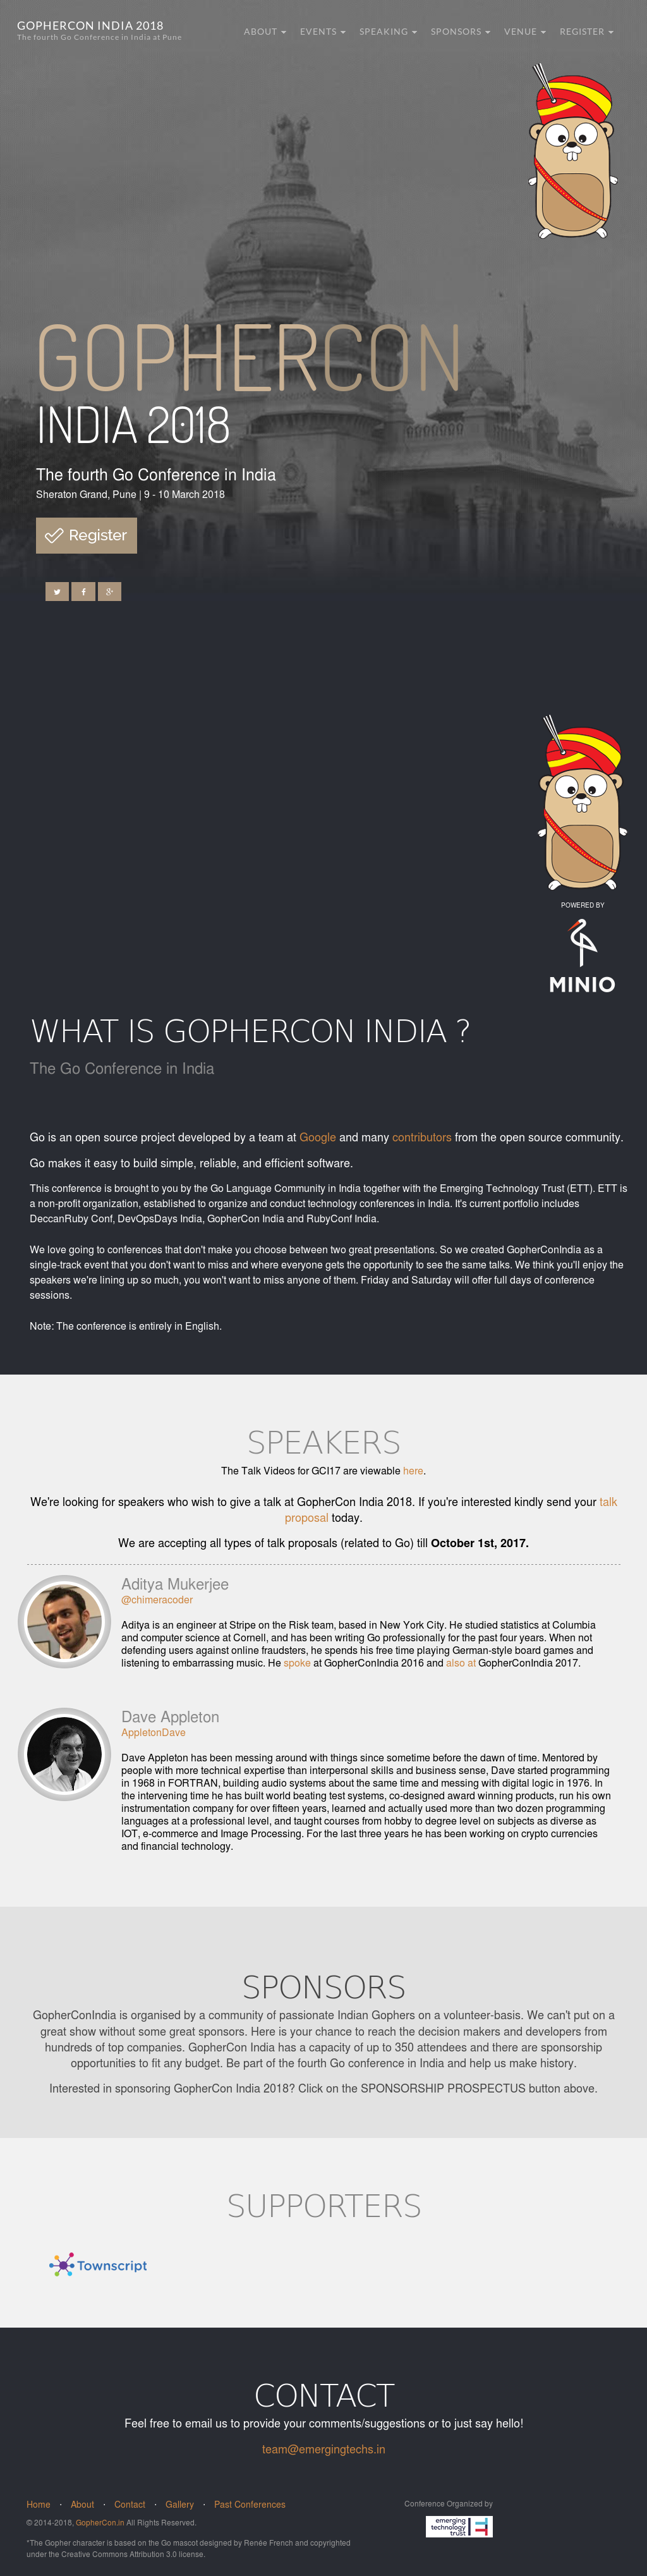 Gopherconindia Competitors, Revenue and Employees - Owler